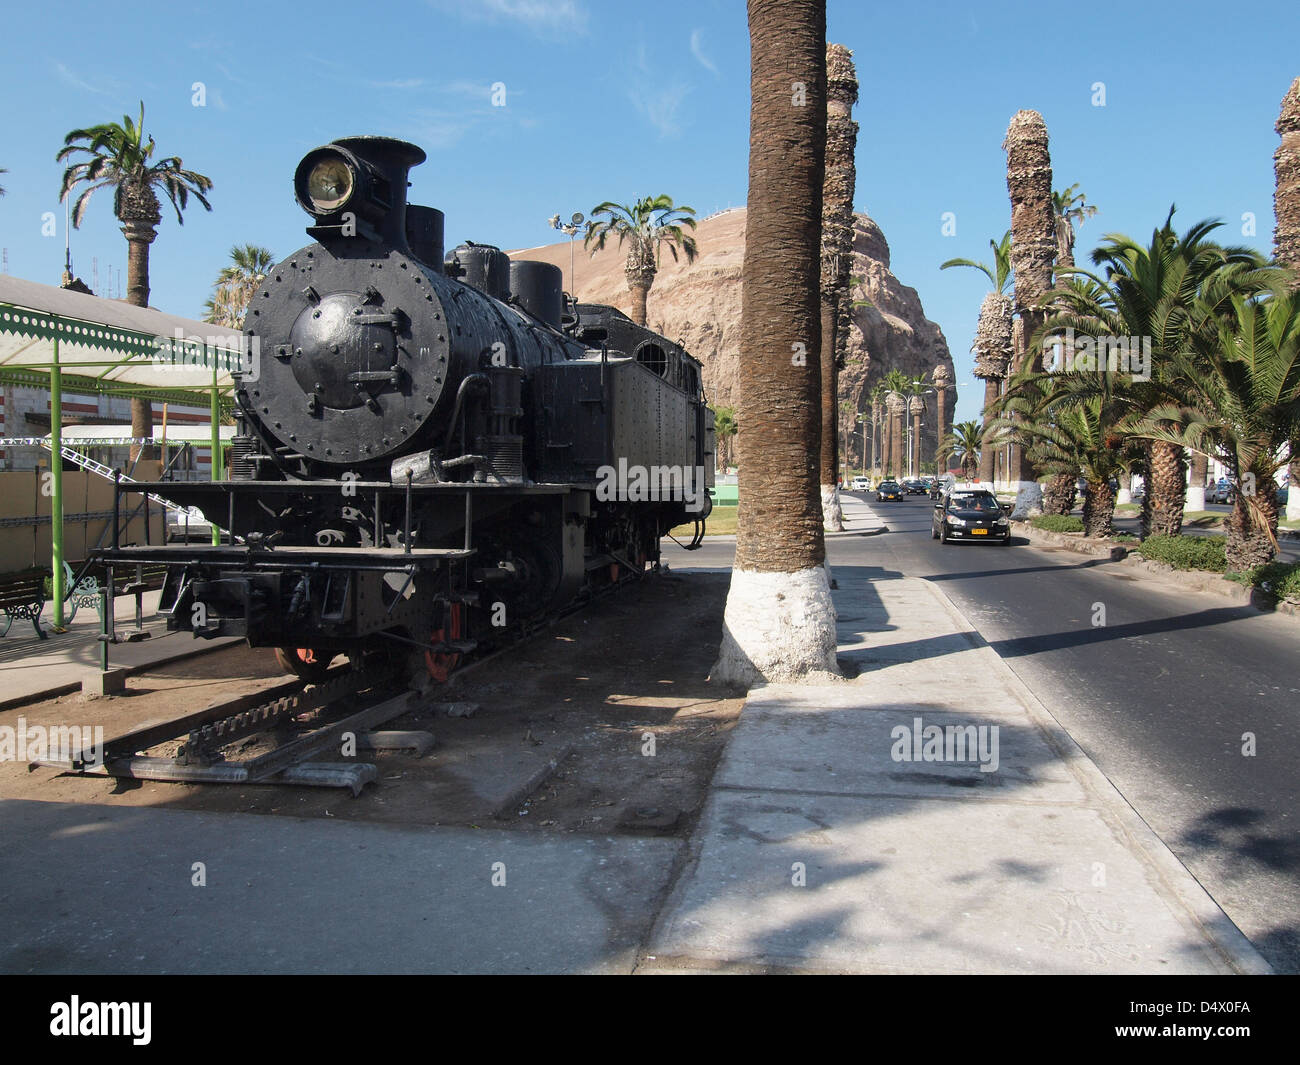 One of the original locomotives of the Arica to La Paz railway on display in the town centre of Arica Stock Photo